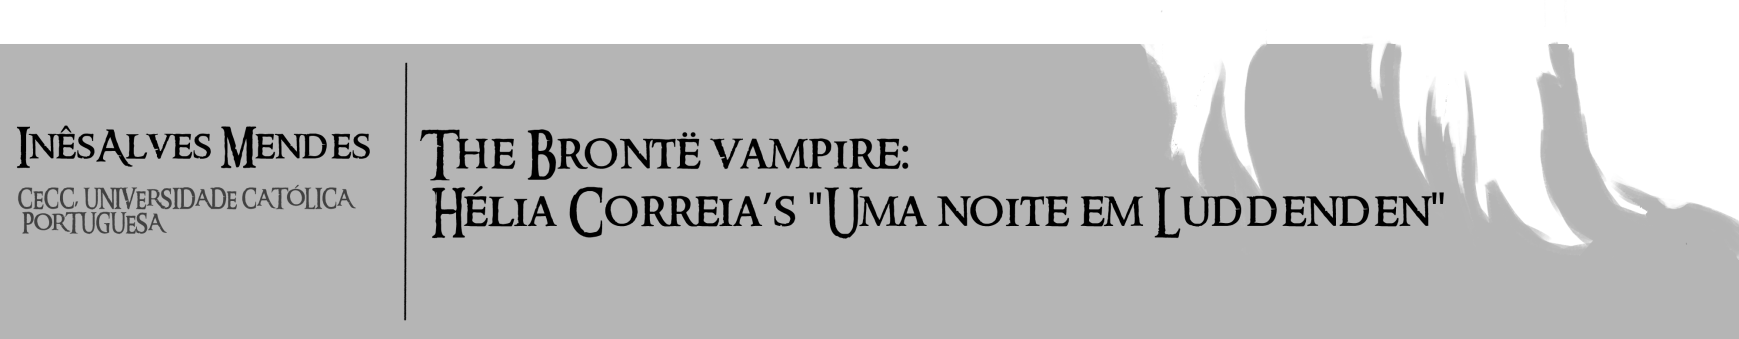 Hélia Correia s Uma noite em Luddenden was published in 2009 as part of a collection of short stories on vampires.